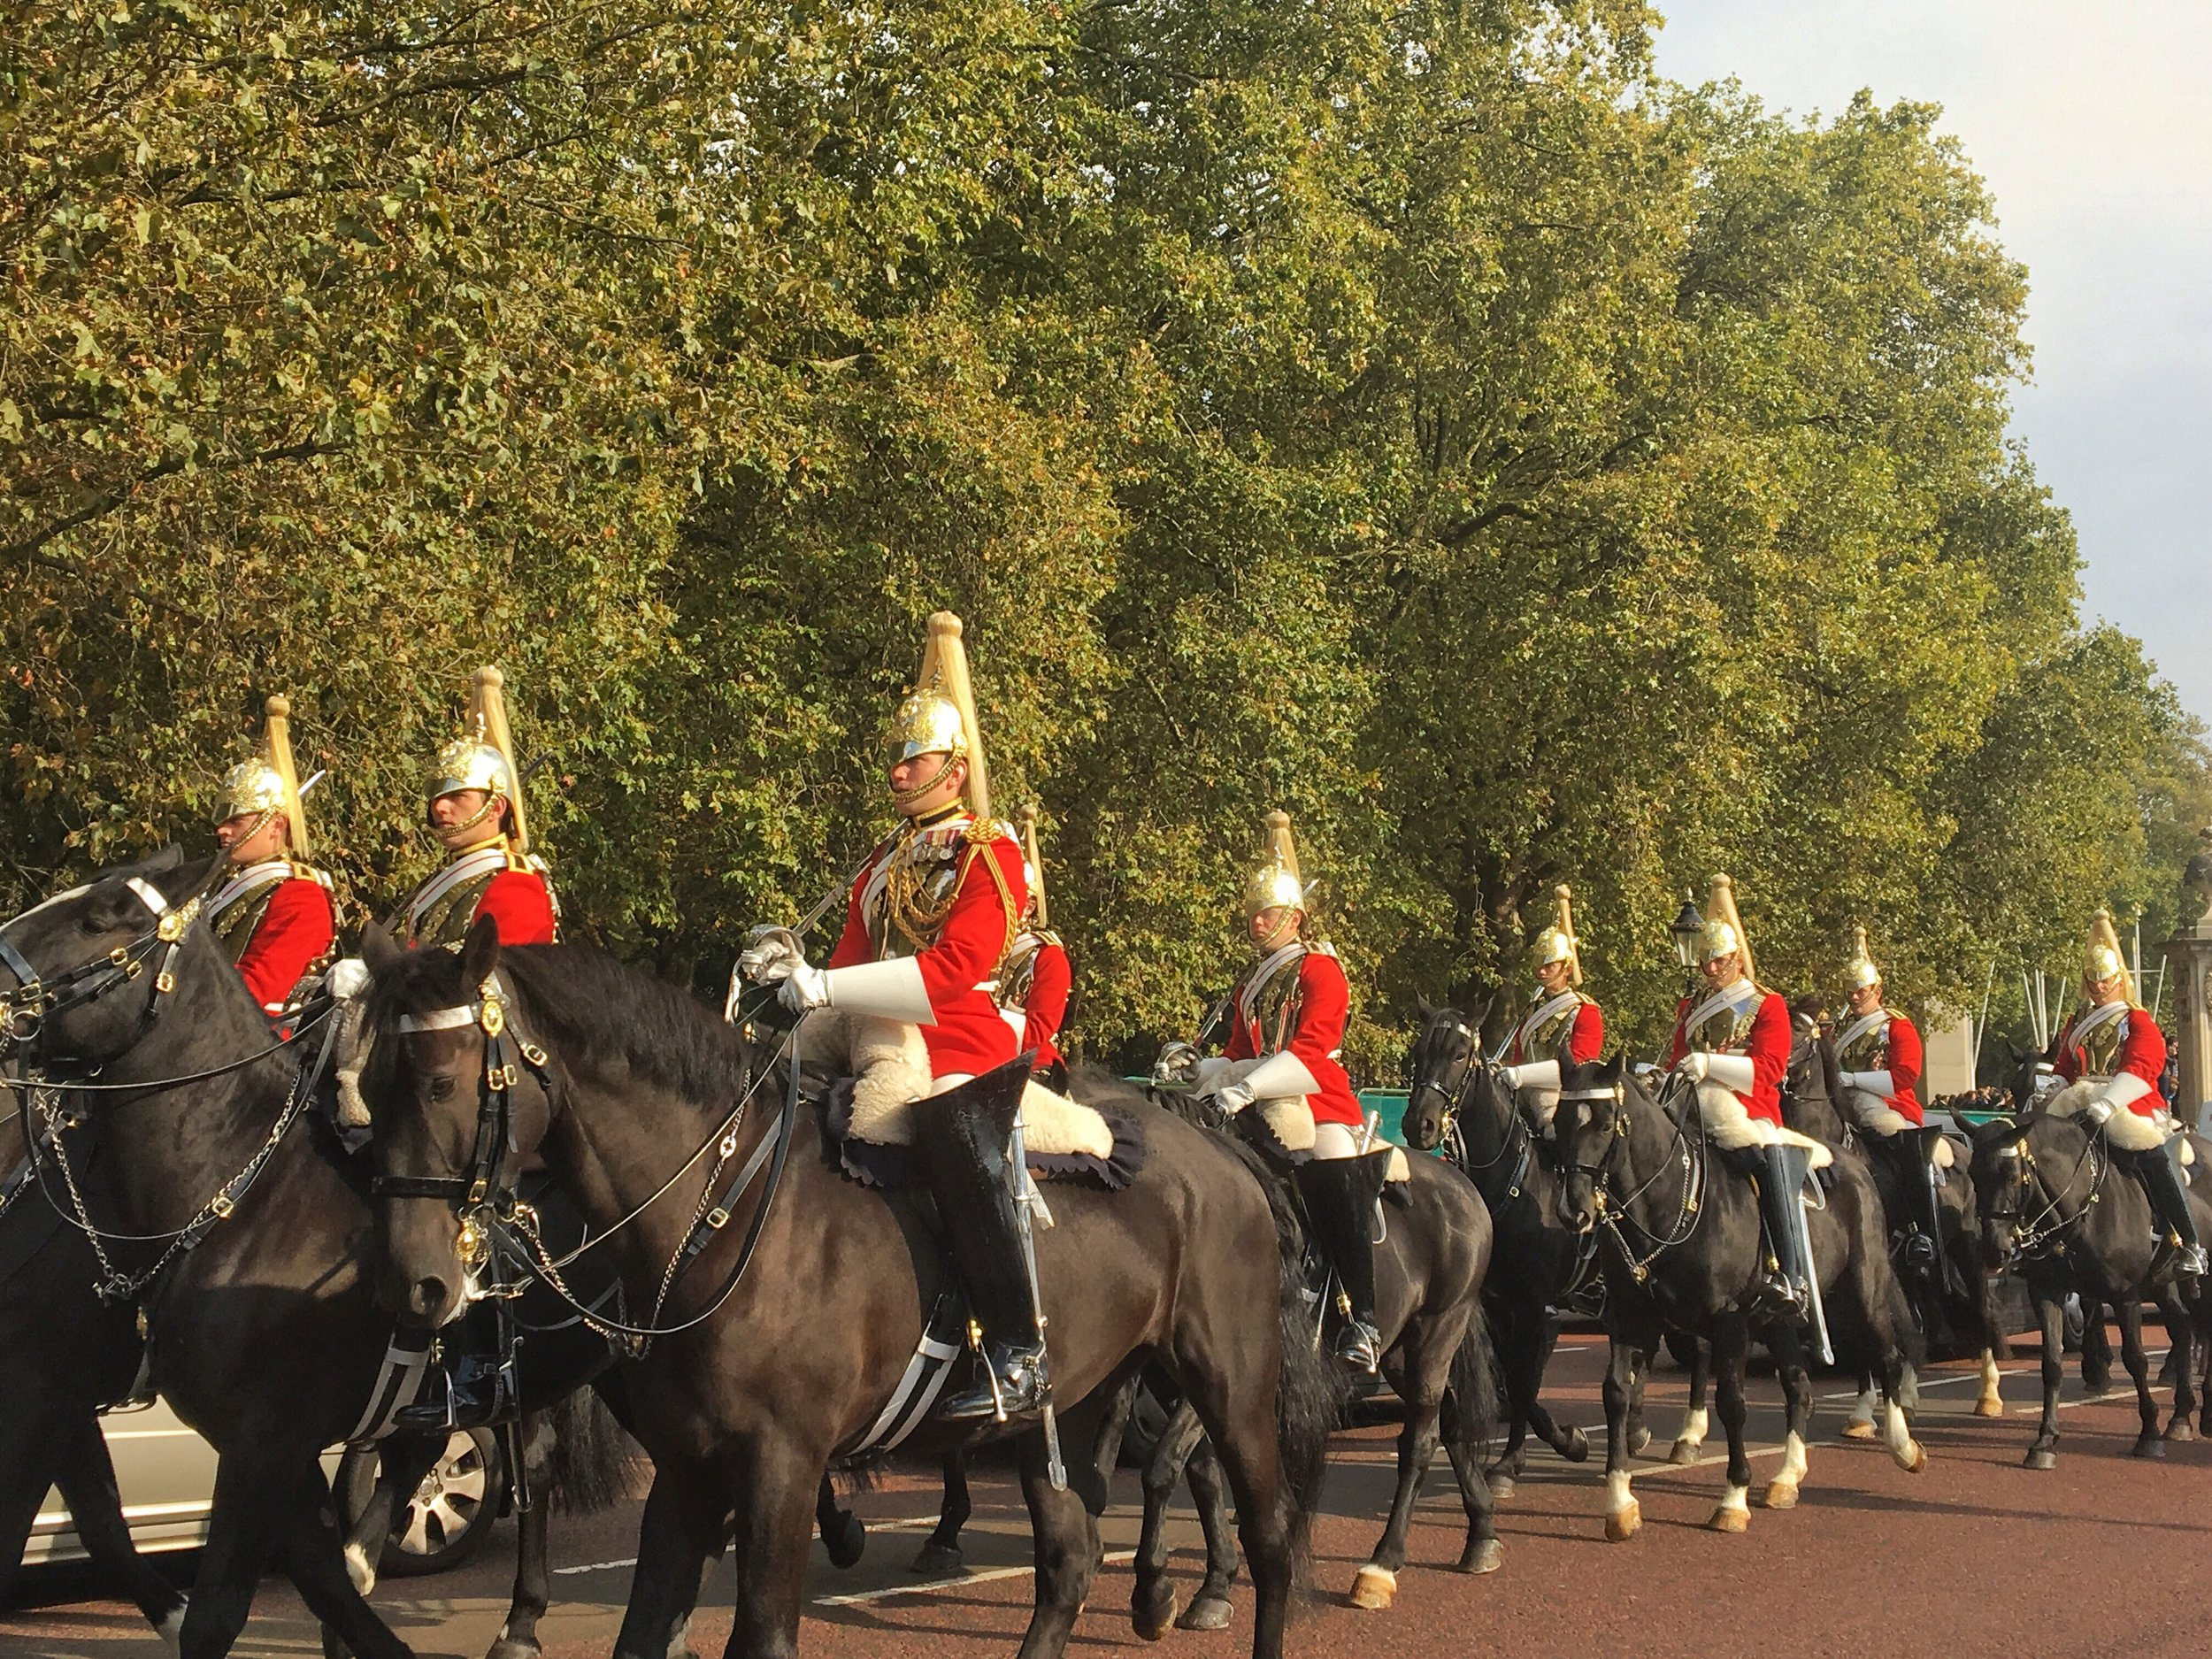 Riding in for the changing of the guard